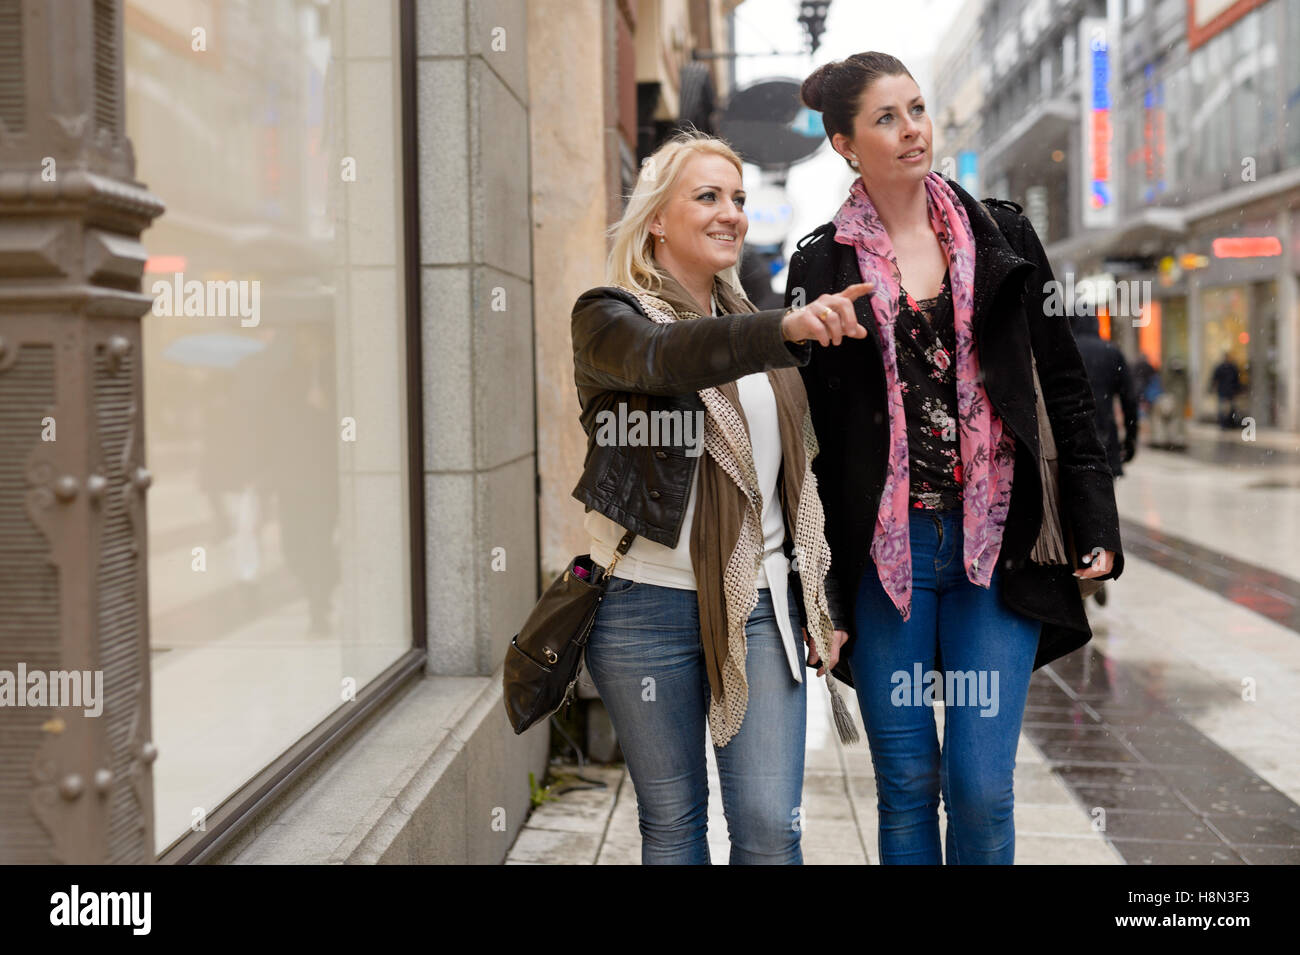 Mid adult women walking down street - Stock Image